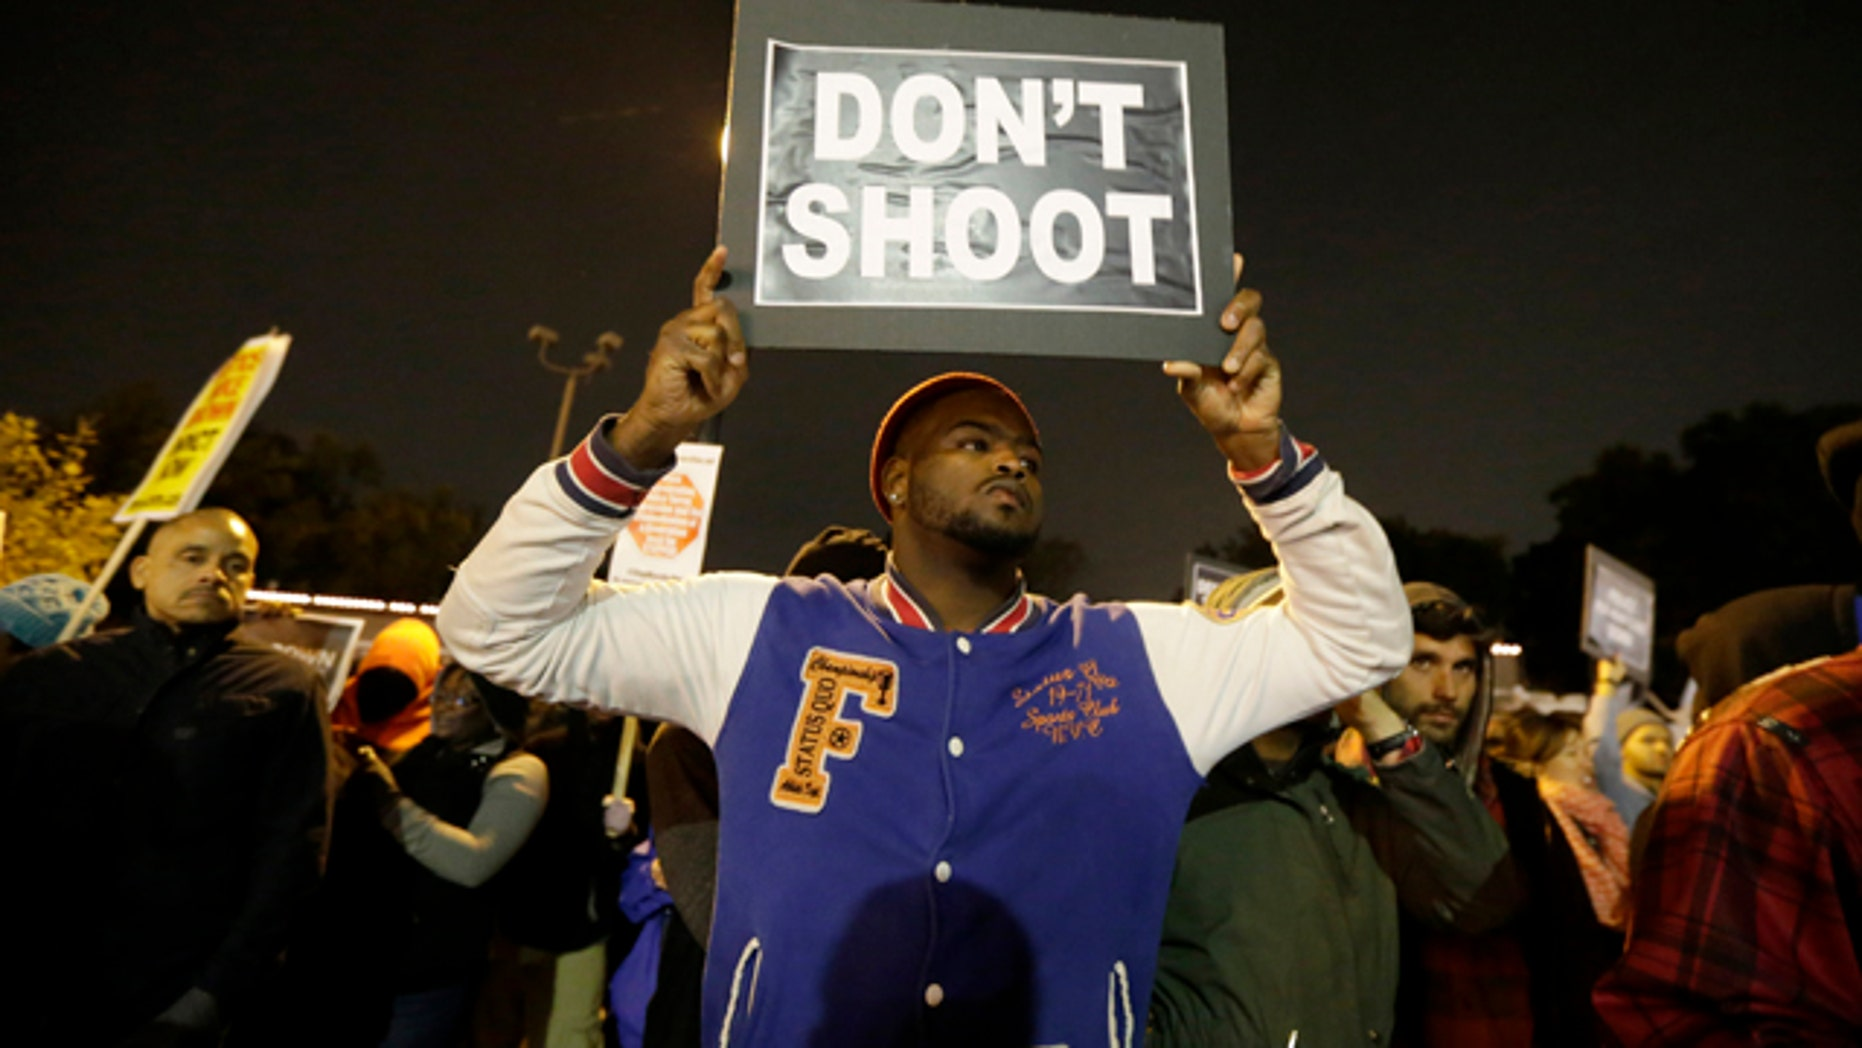 October 10, 2014: Protesters gather across the street from the Ferguson, Mo., police station in a continuing protest of the shooting of Michael Brown. (AP Photo/Charles Rex Arbogast)